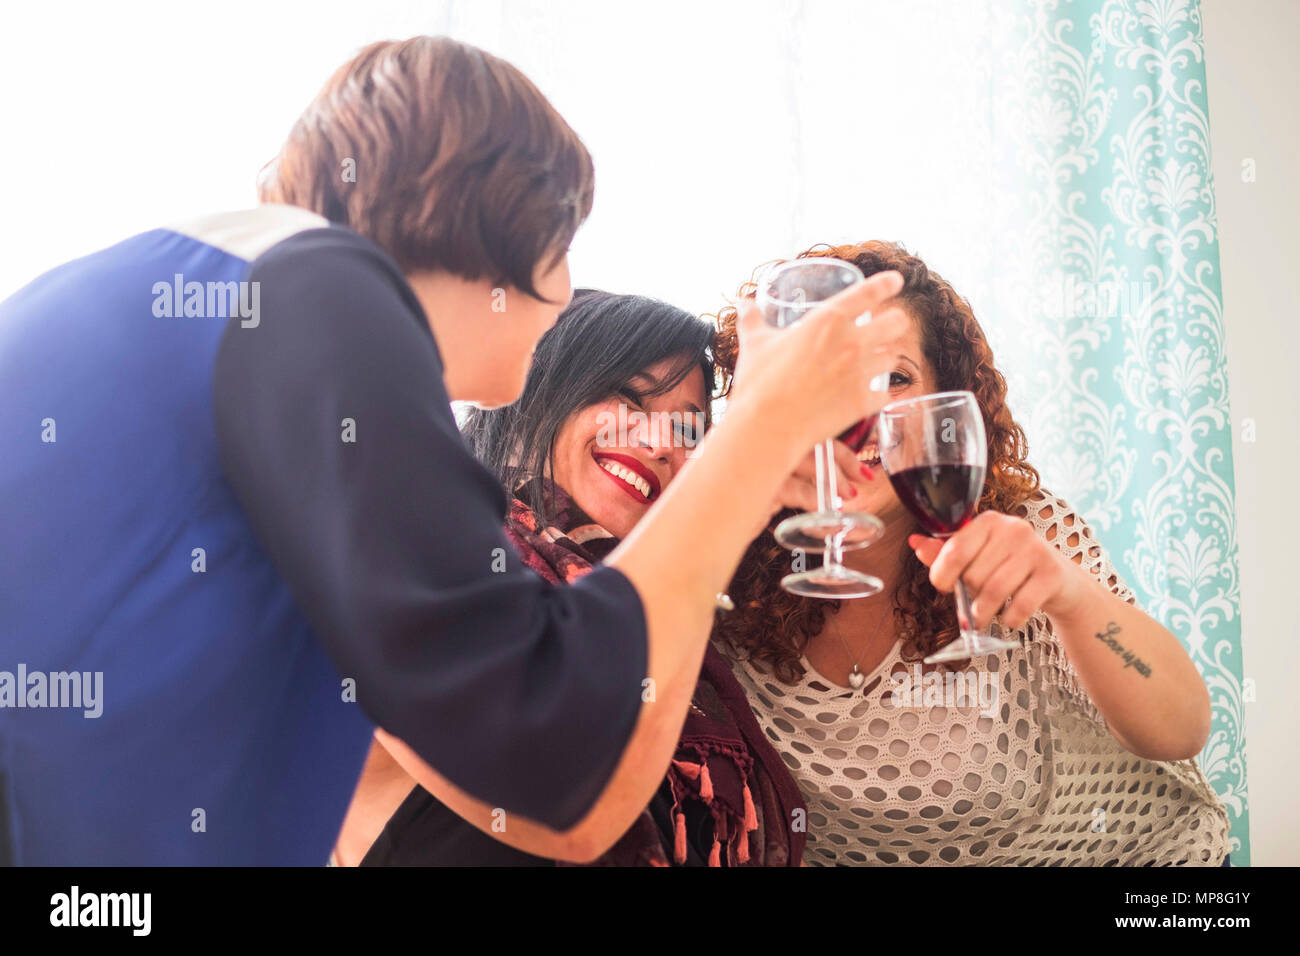 celebration and happiness time for three caucasian young women at home drinking wine together. friendship and party time with backlight from the windo - Stock Image